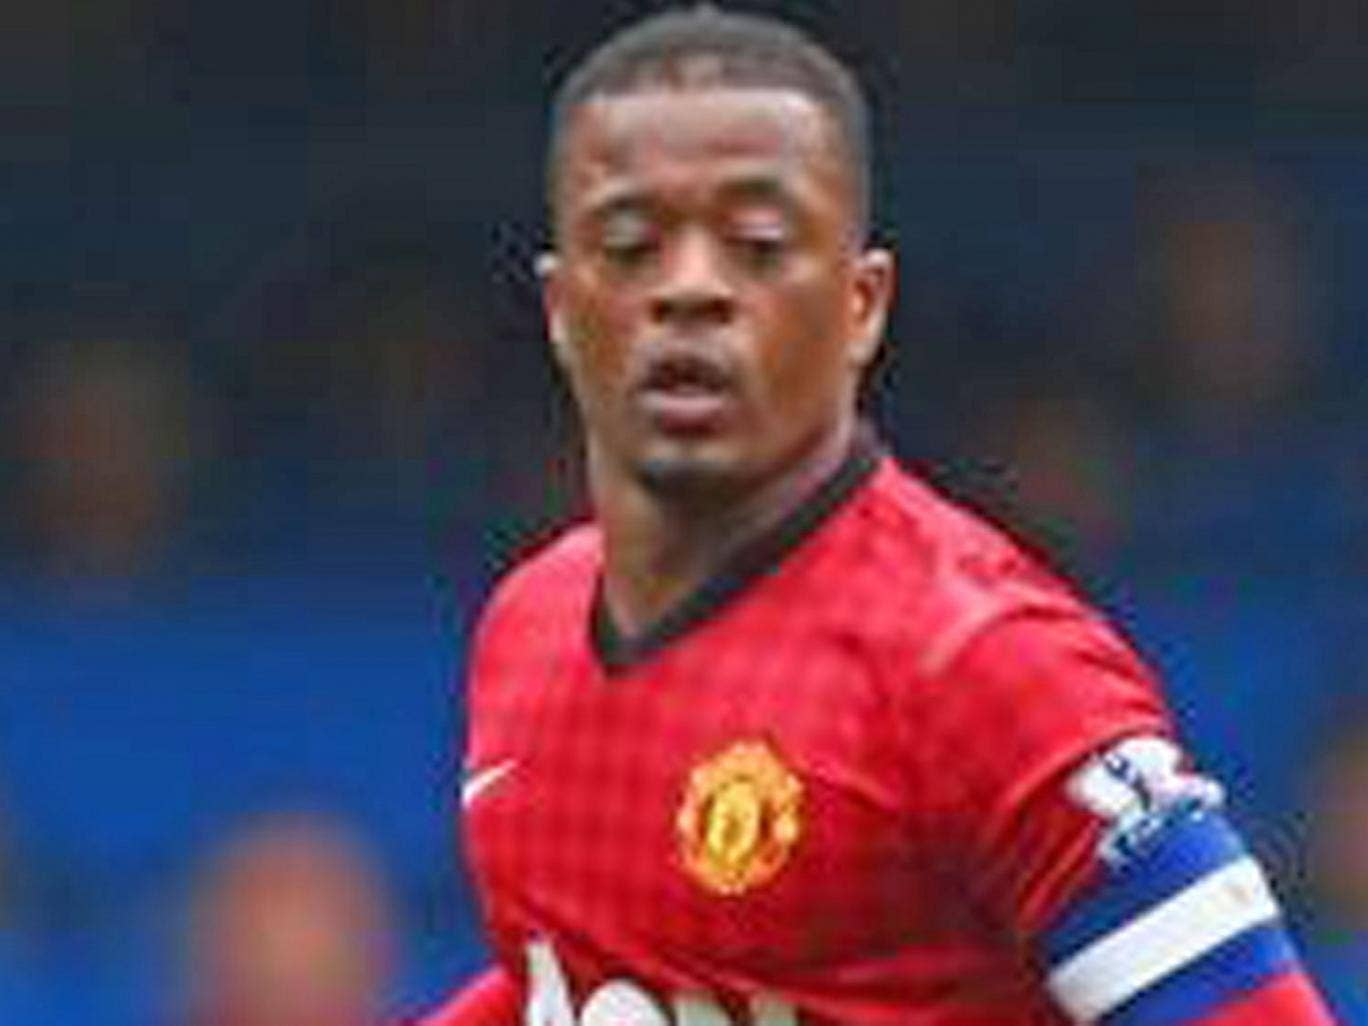 PATRICE EVRA: Defended well in his own penalty area and stuck well to the tireless running of James Milner on his side